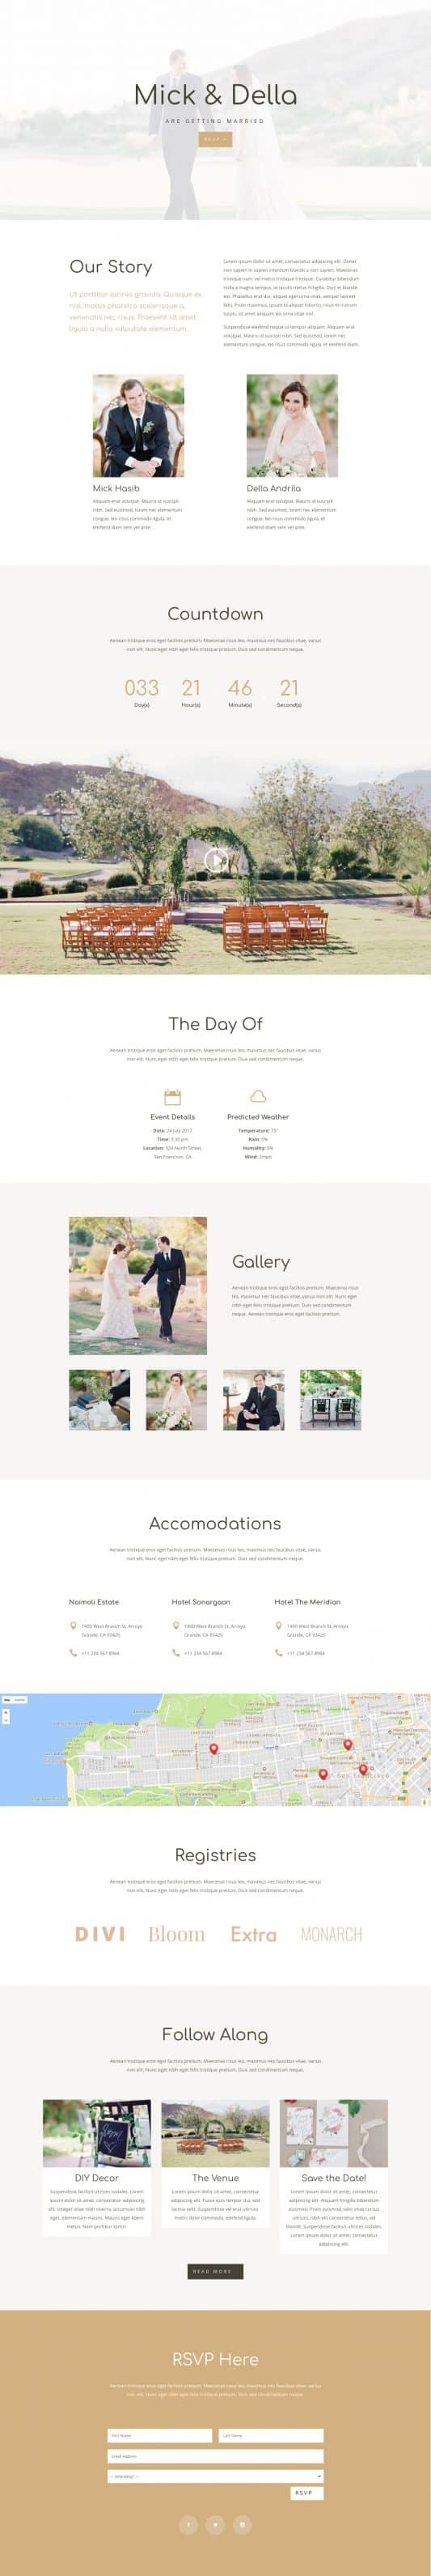 Wedding Web Design 6